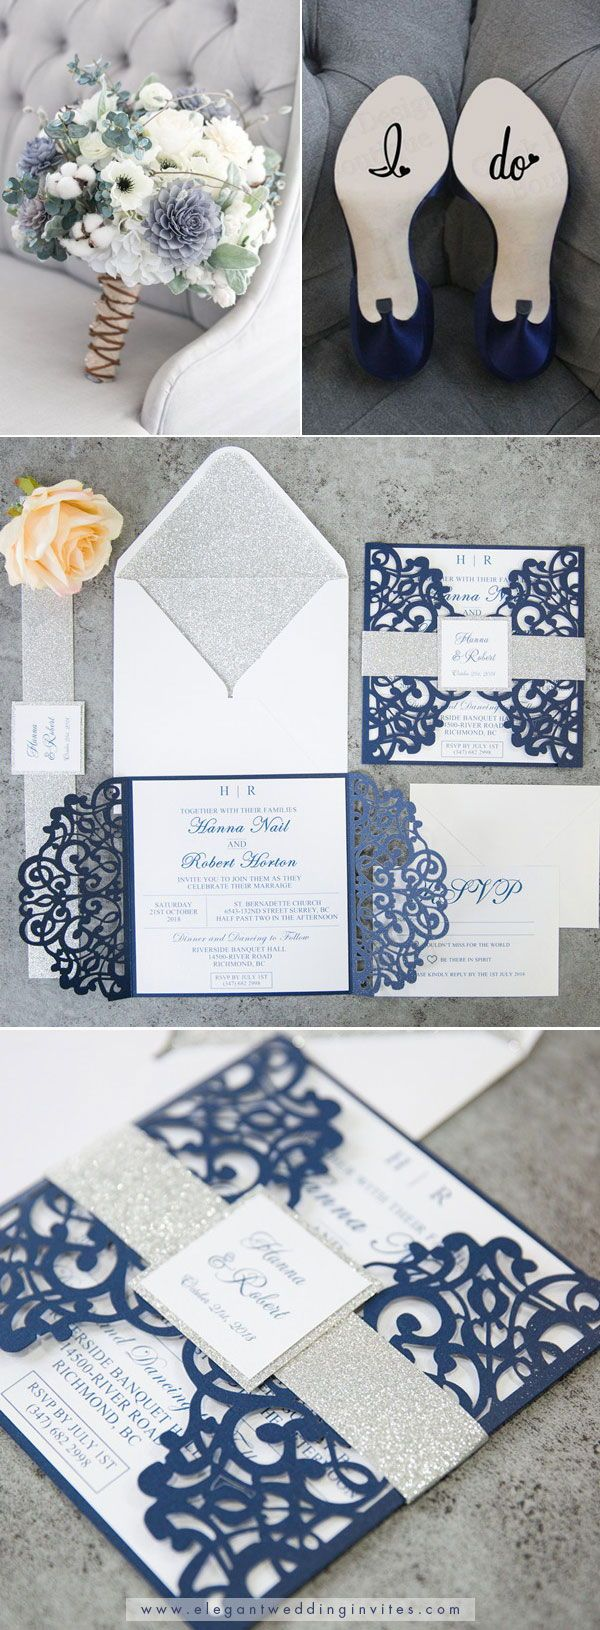 Wedding decorations beach december 2018 Itus here White case  sample of mini cards jennyferry